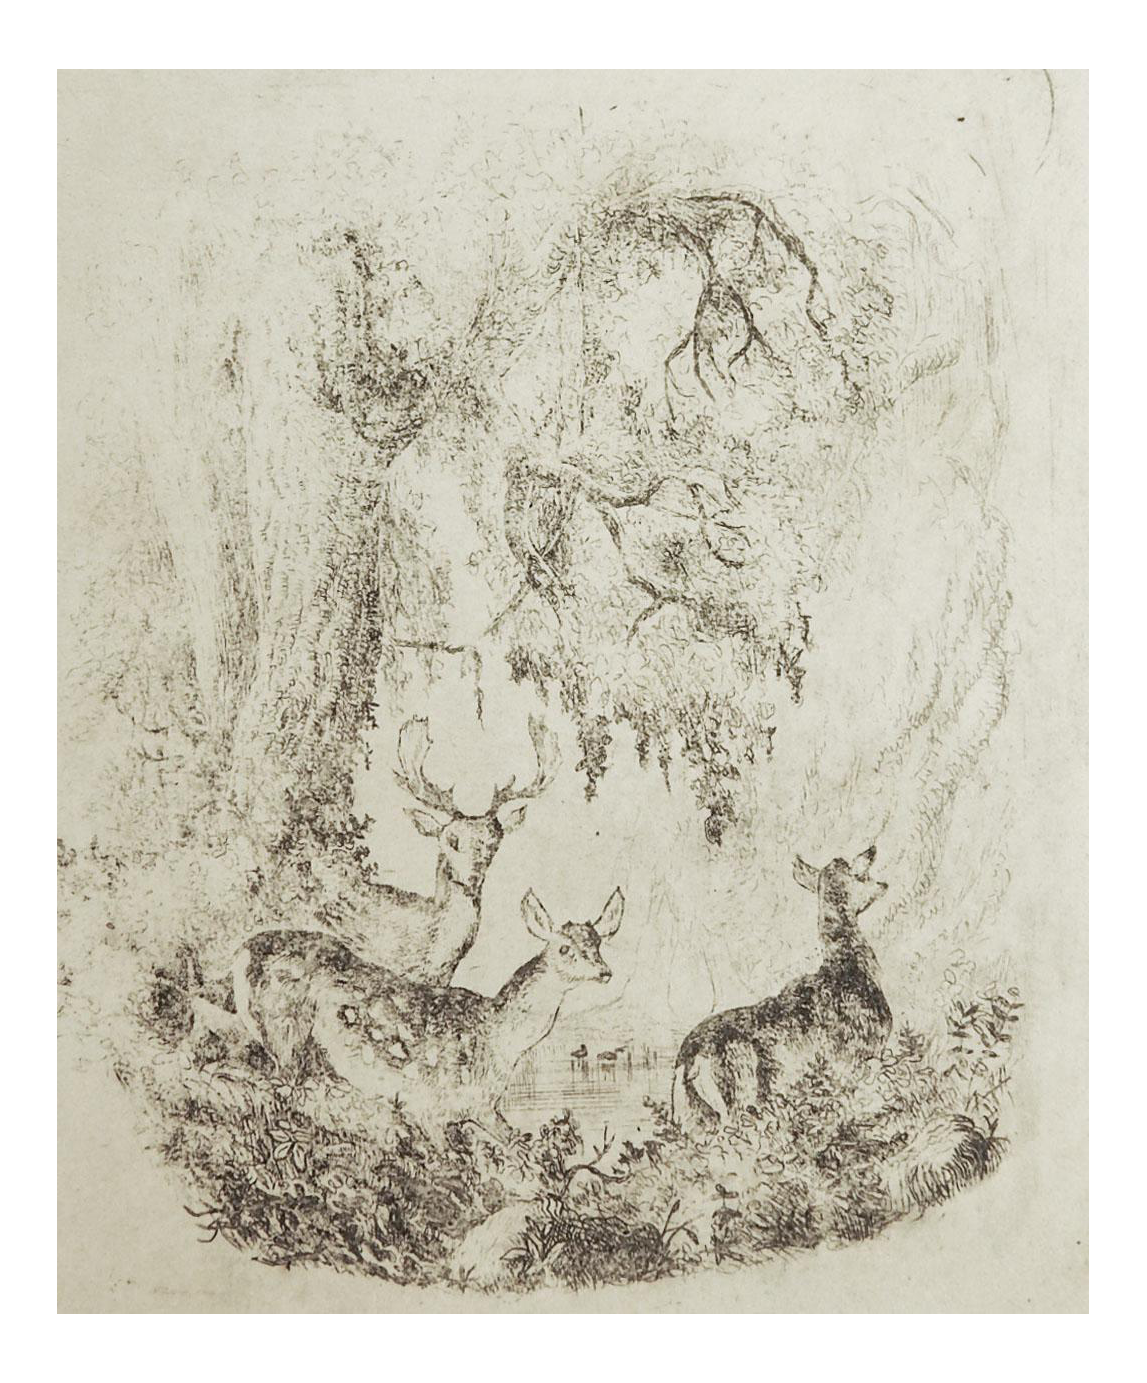 Tiny deer in forest. Etching drawing pen and ink clip art royalty free